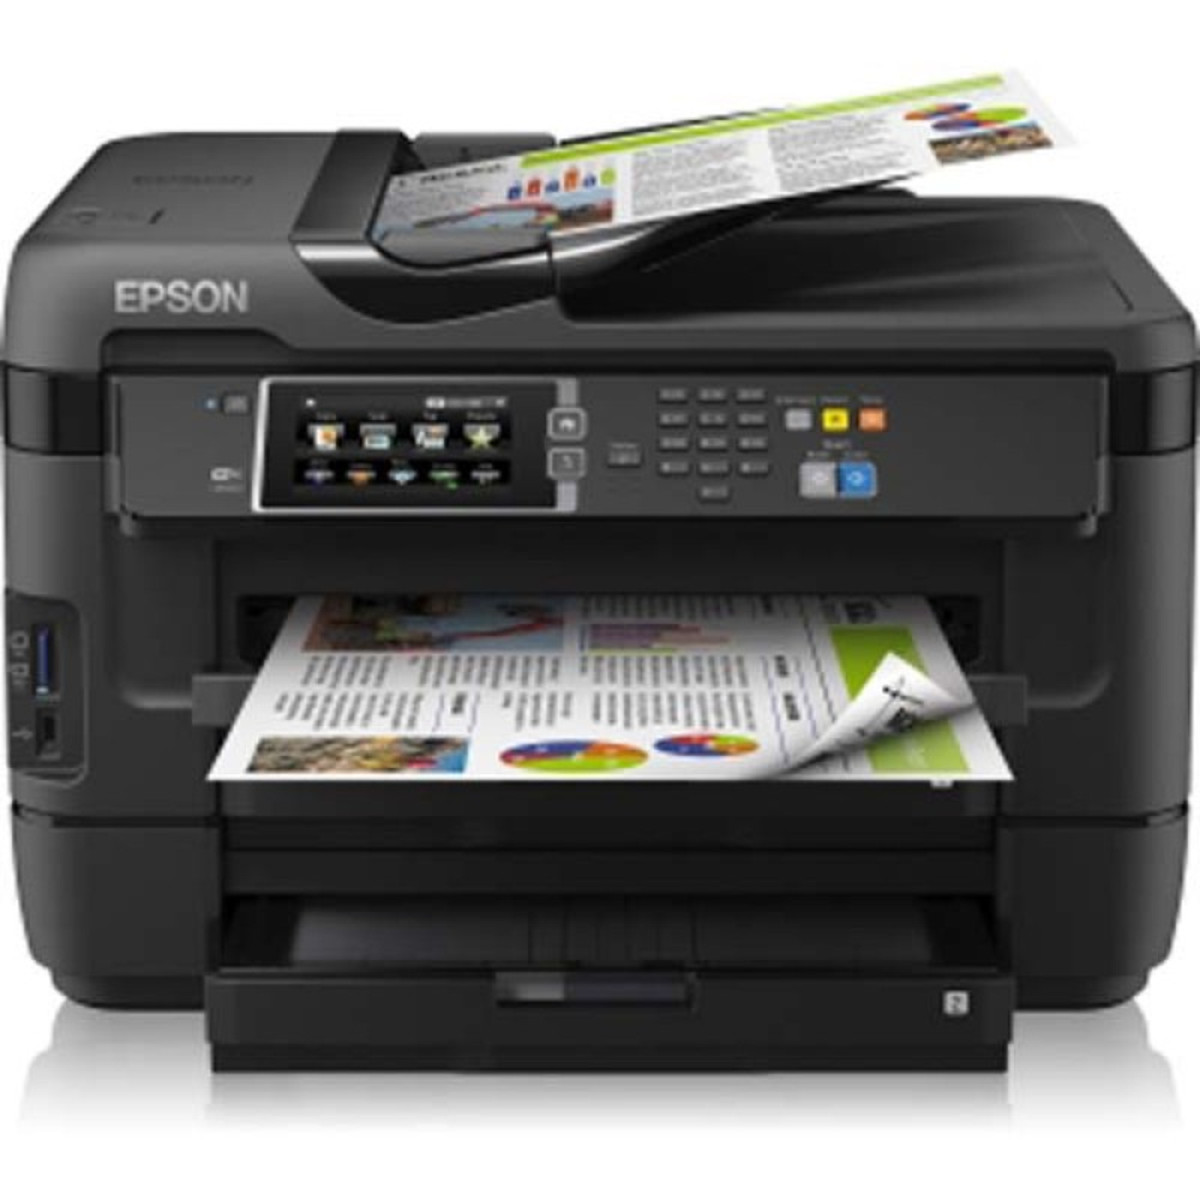 Epson WorkForce WF7620 Inkjet Printer